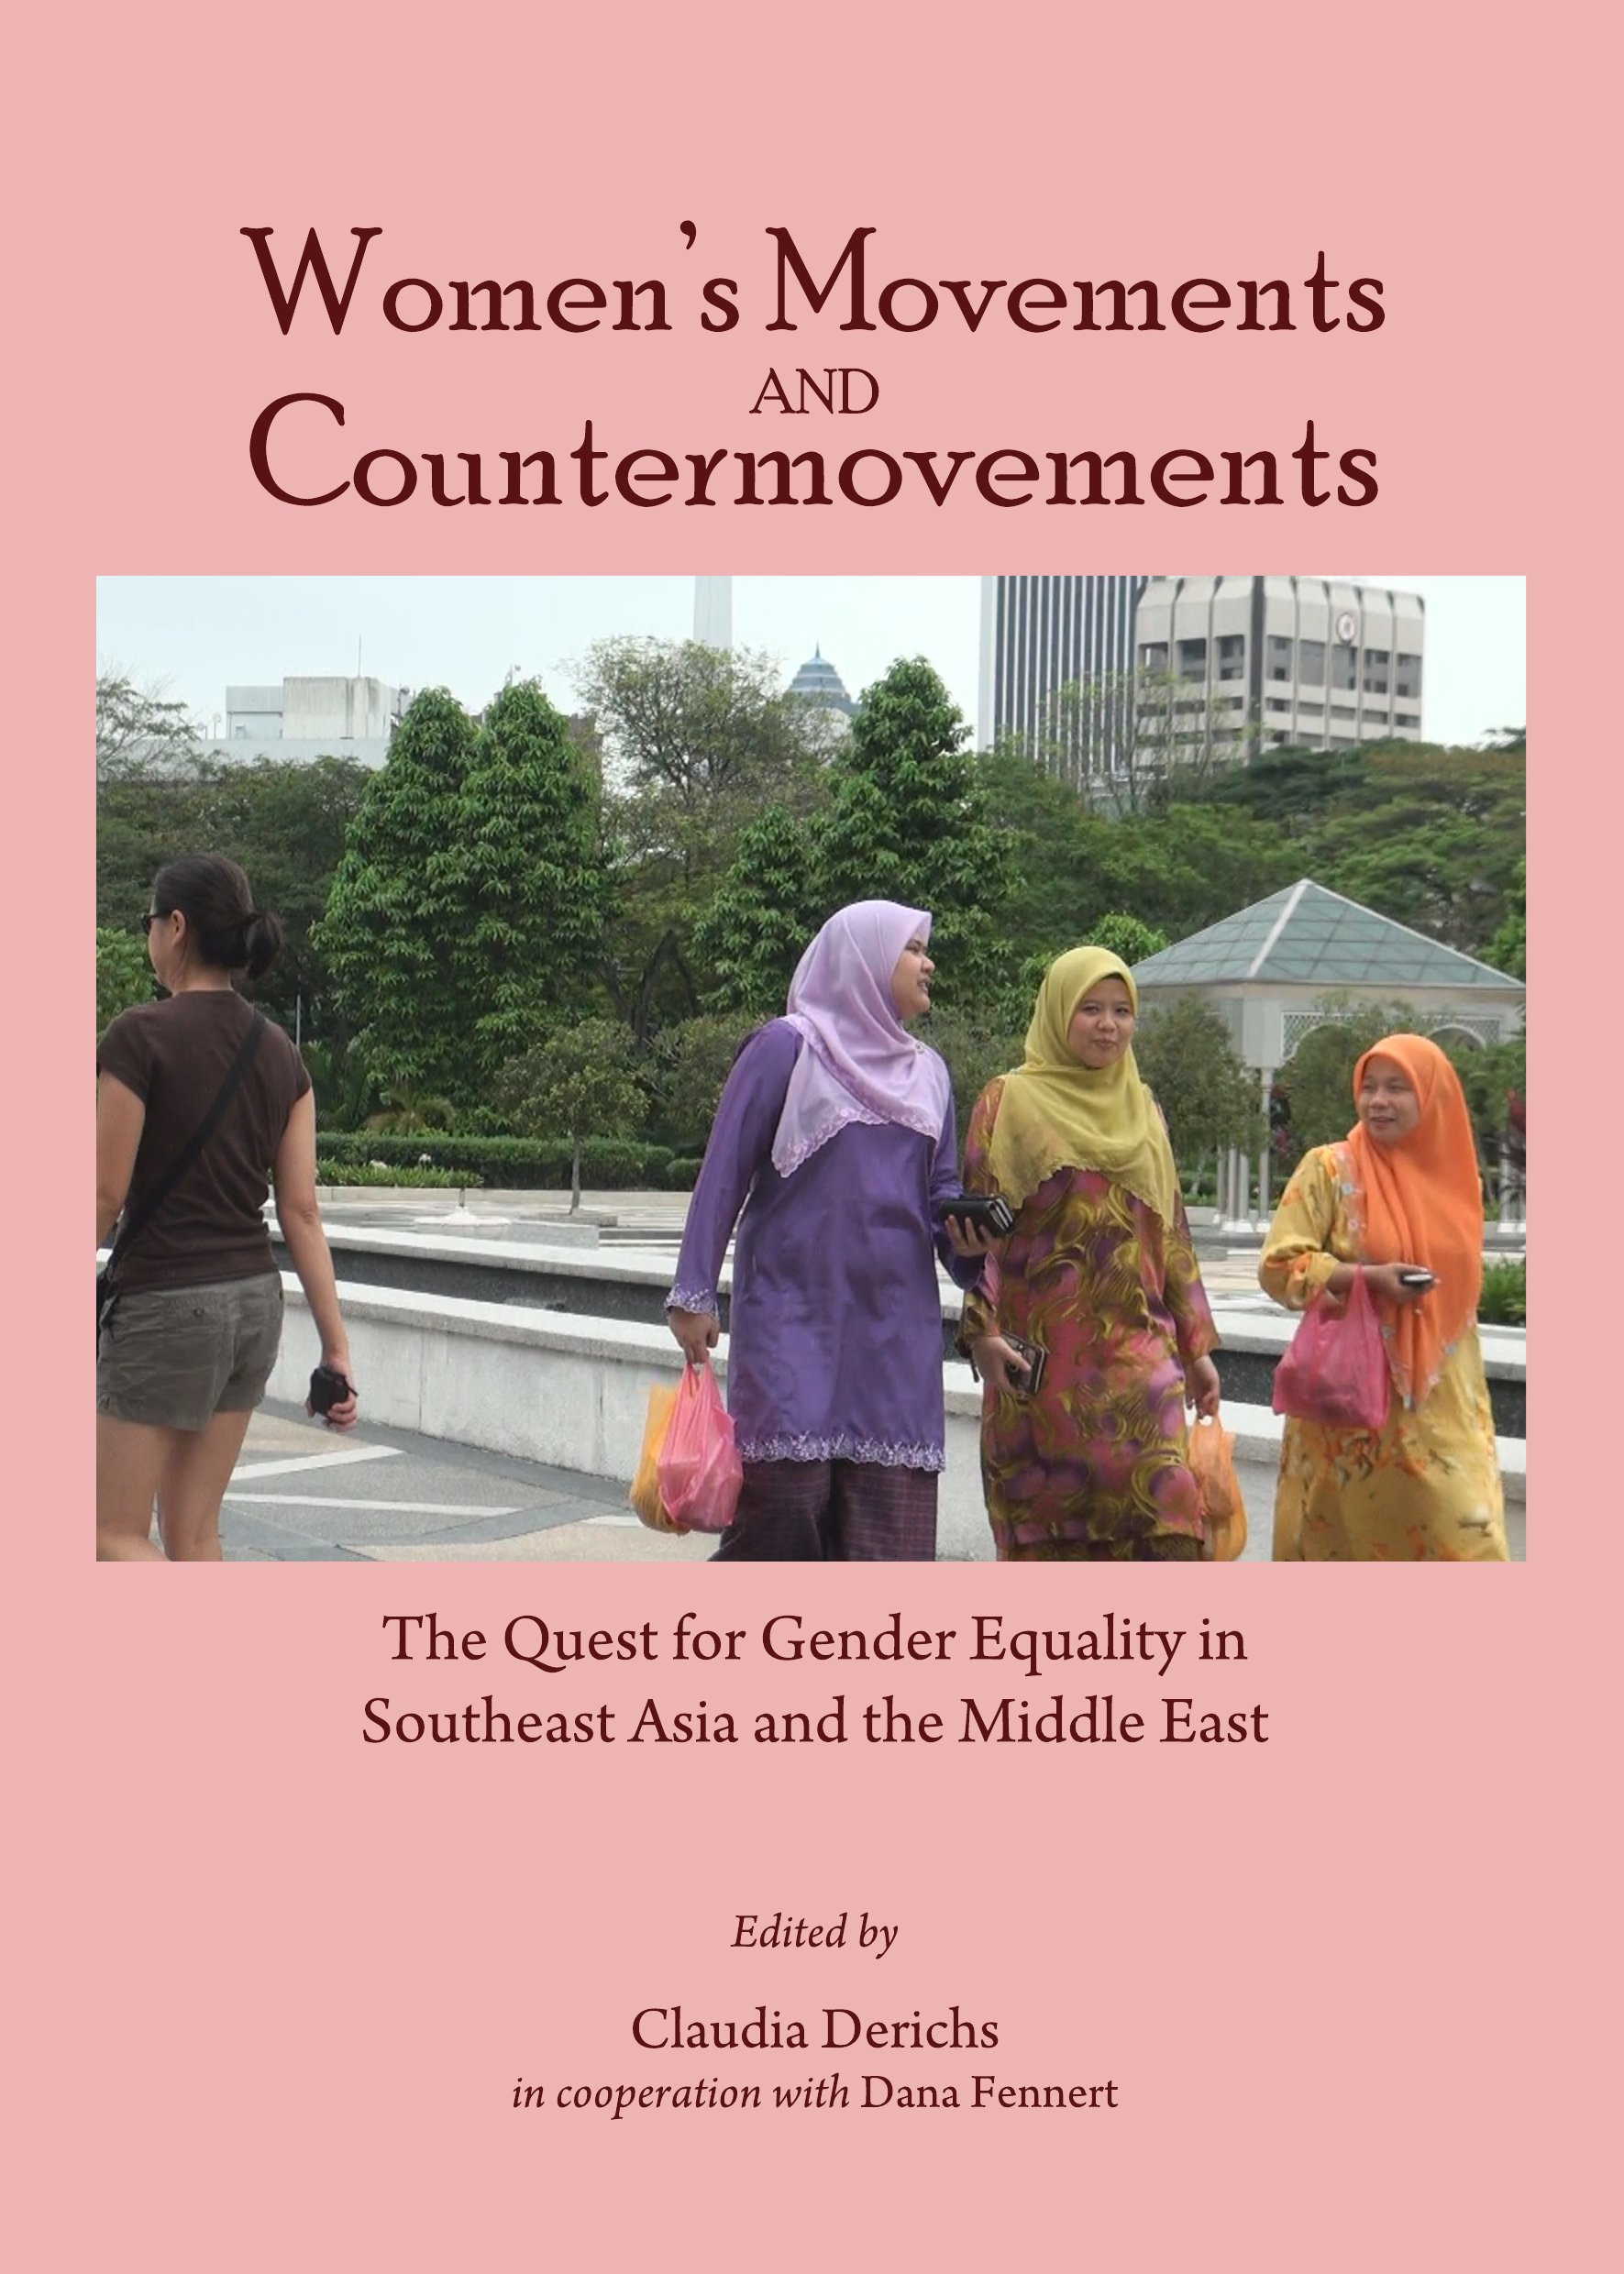 Women's Movements and Countermovements: The Quest for Gender Equality in Southeast Asia and the Middle East